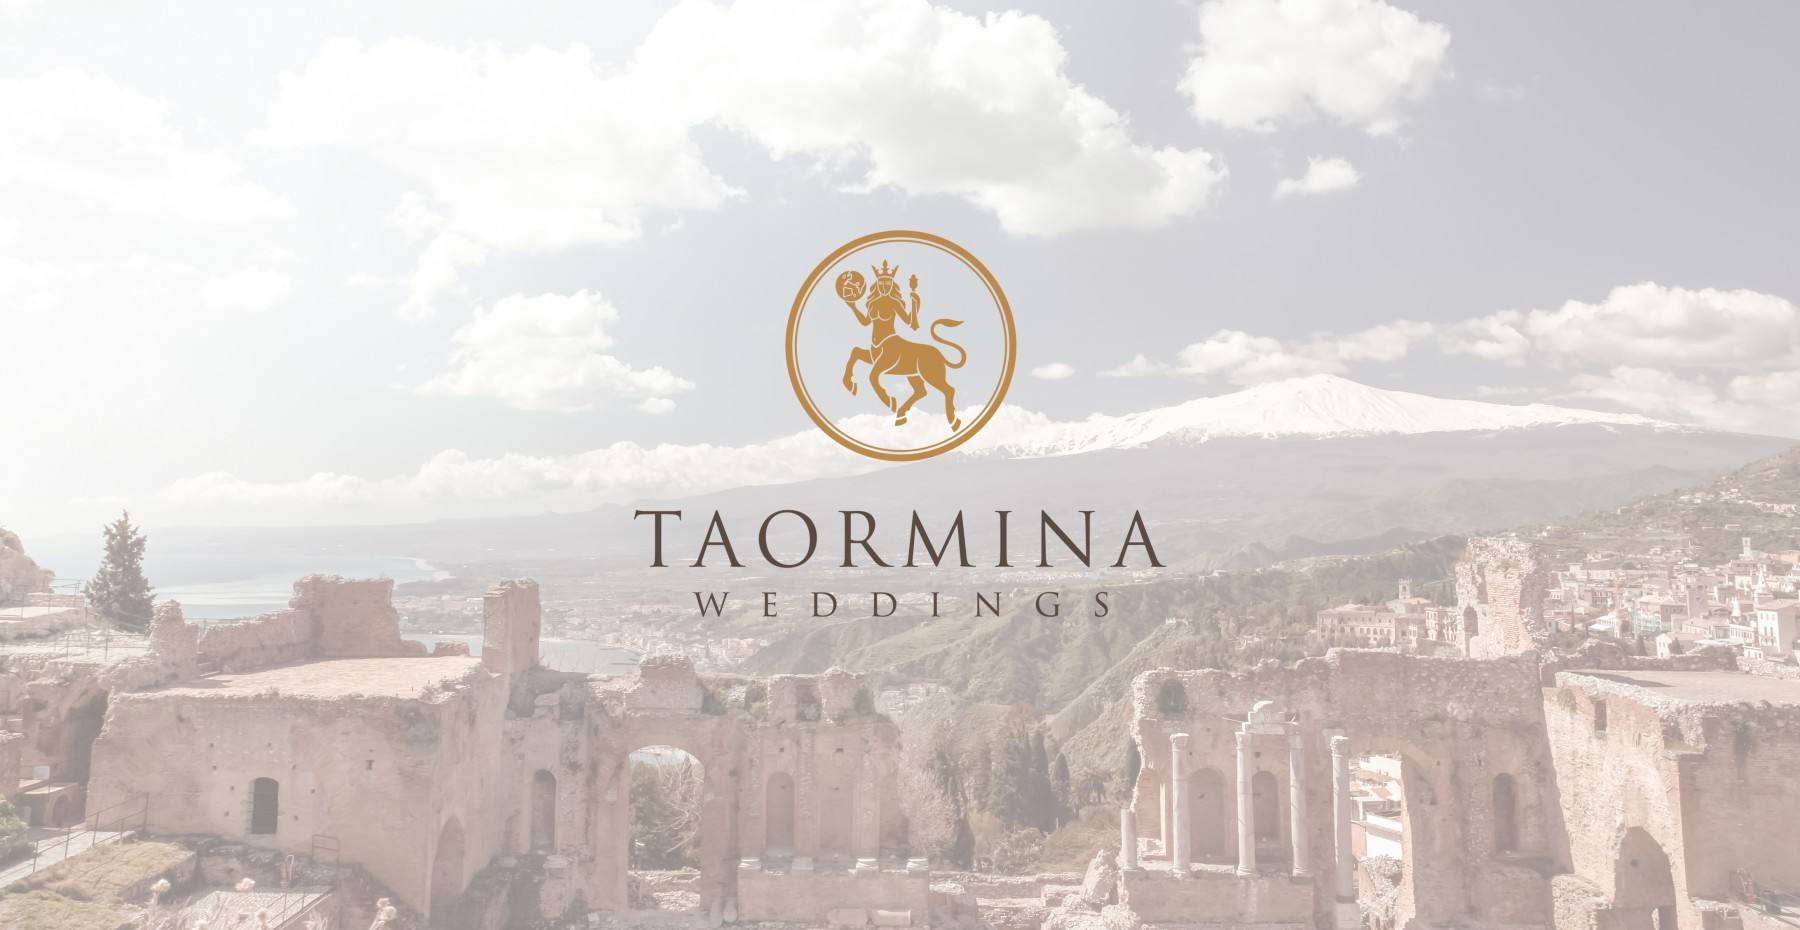 Taormina Weddings,Sicily,Italy-wedding planner